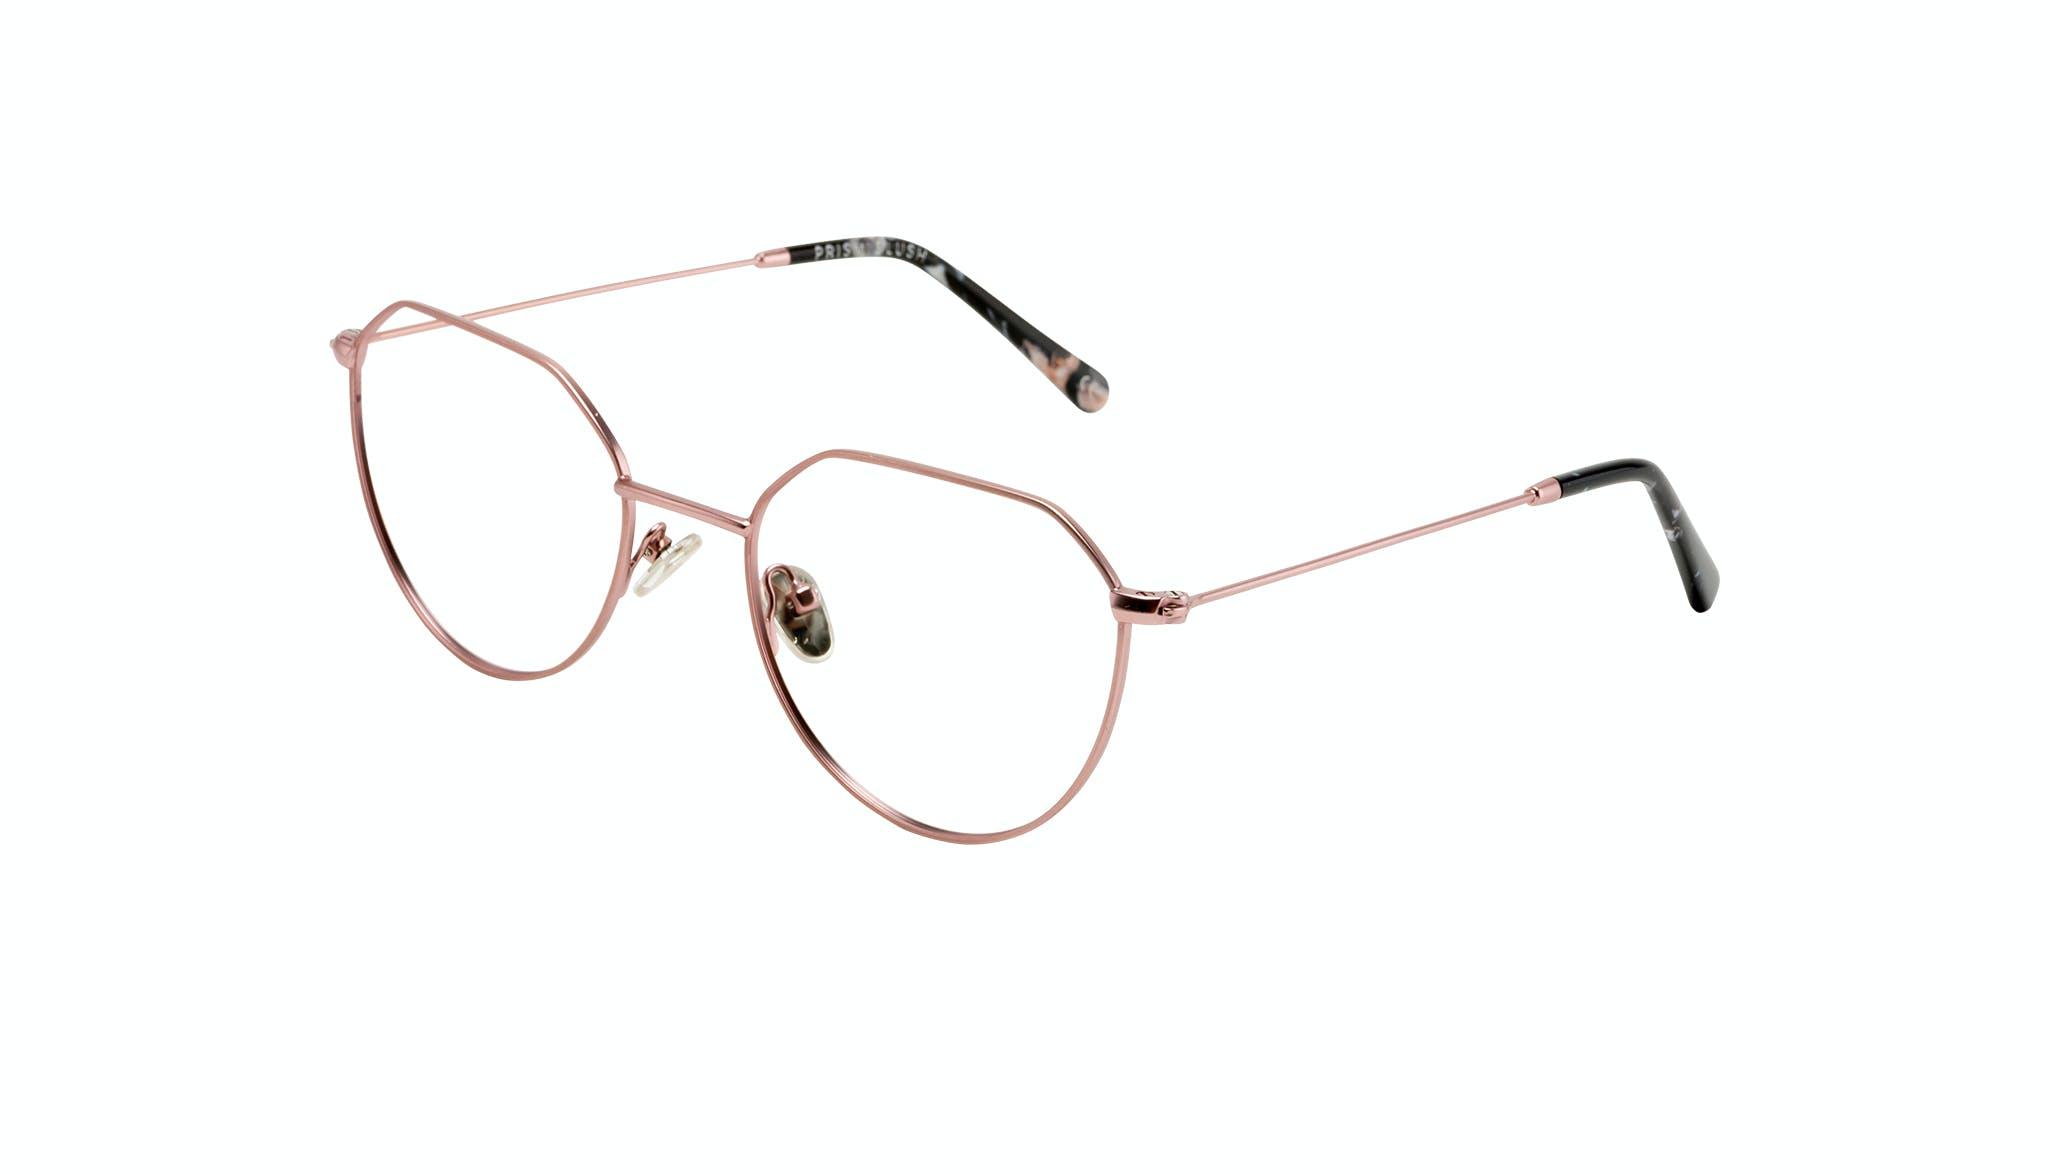 Affordable Fashion Glasses Round Eyeglasses Women Prism Blush Tilt